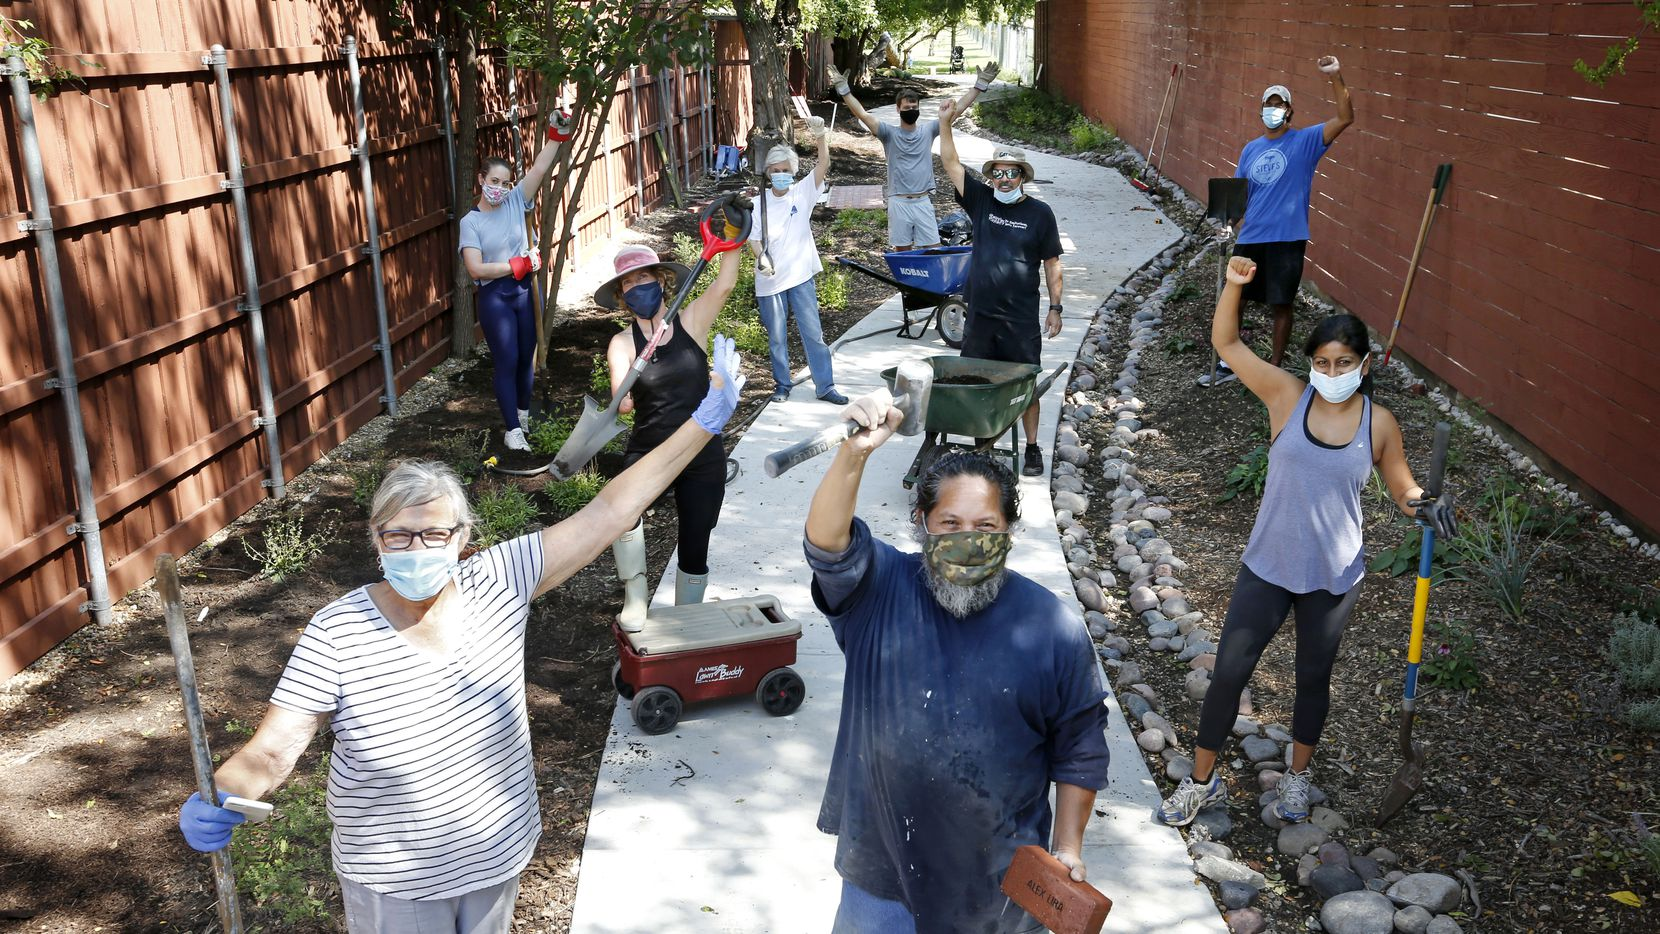 Led by Judy Sullivan (front left), neighbors and friends of the Cochran Heights Neighborhood Association have turned a former eyesore into a pleasant thoroughfare connecting their neighborhood to a city park.